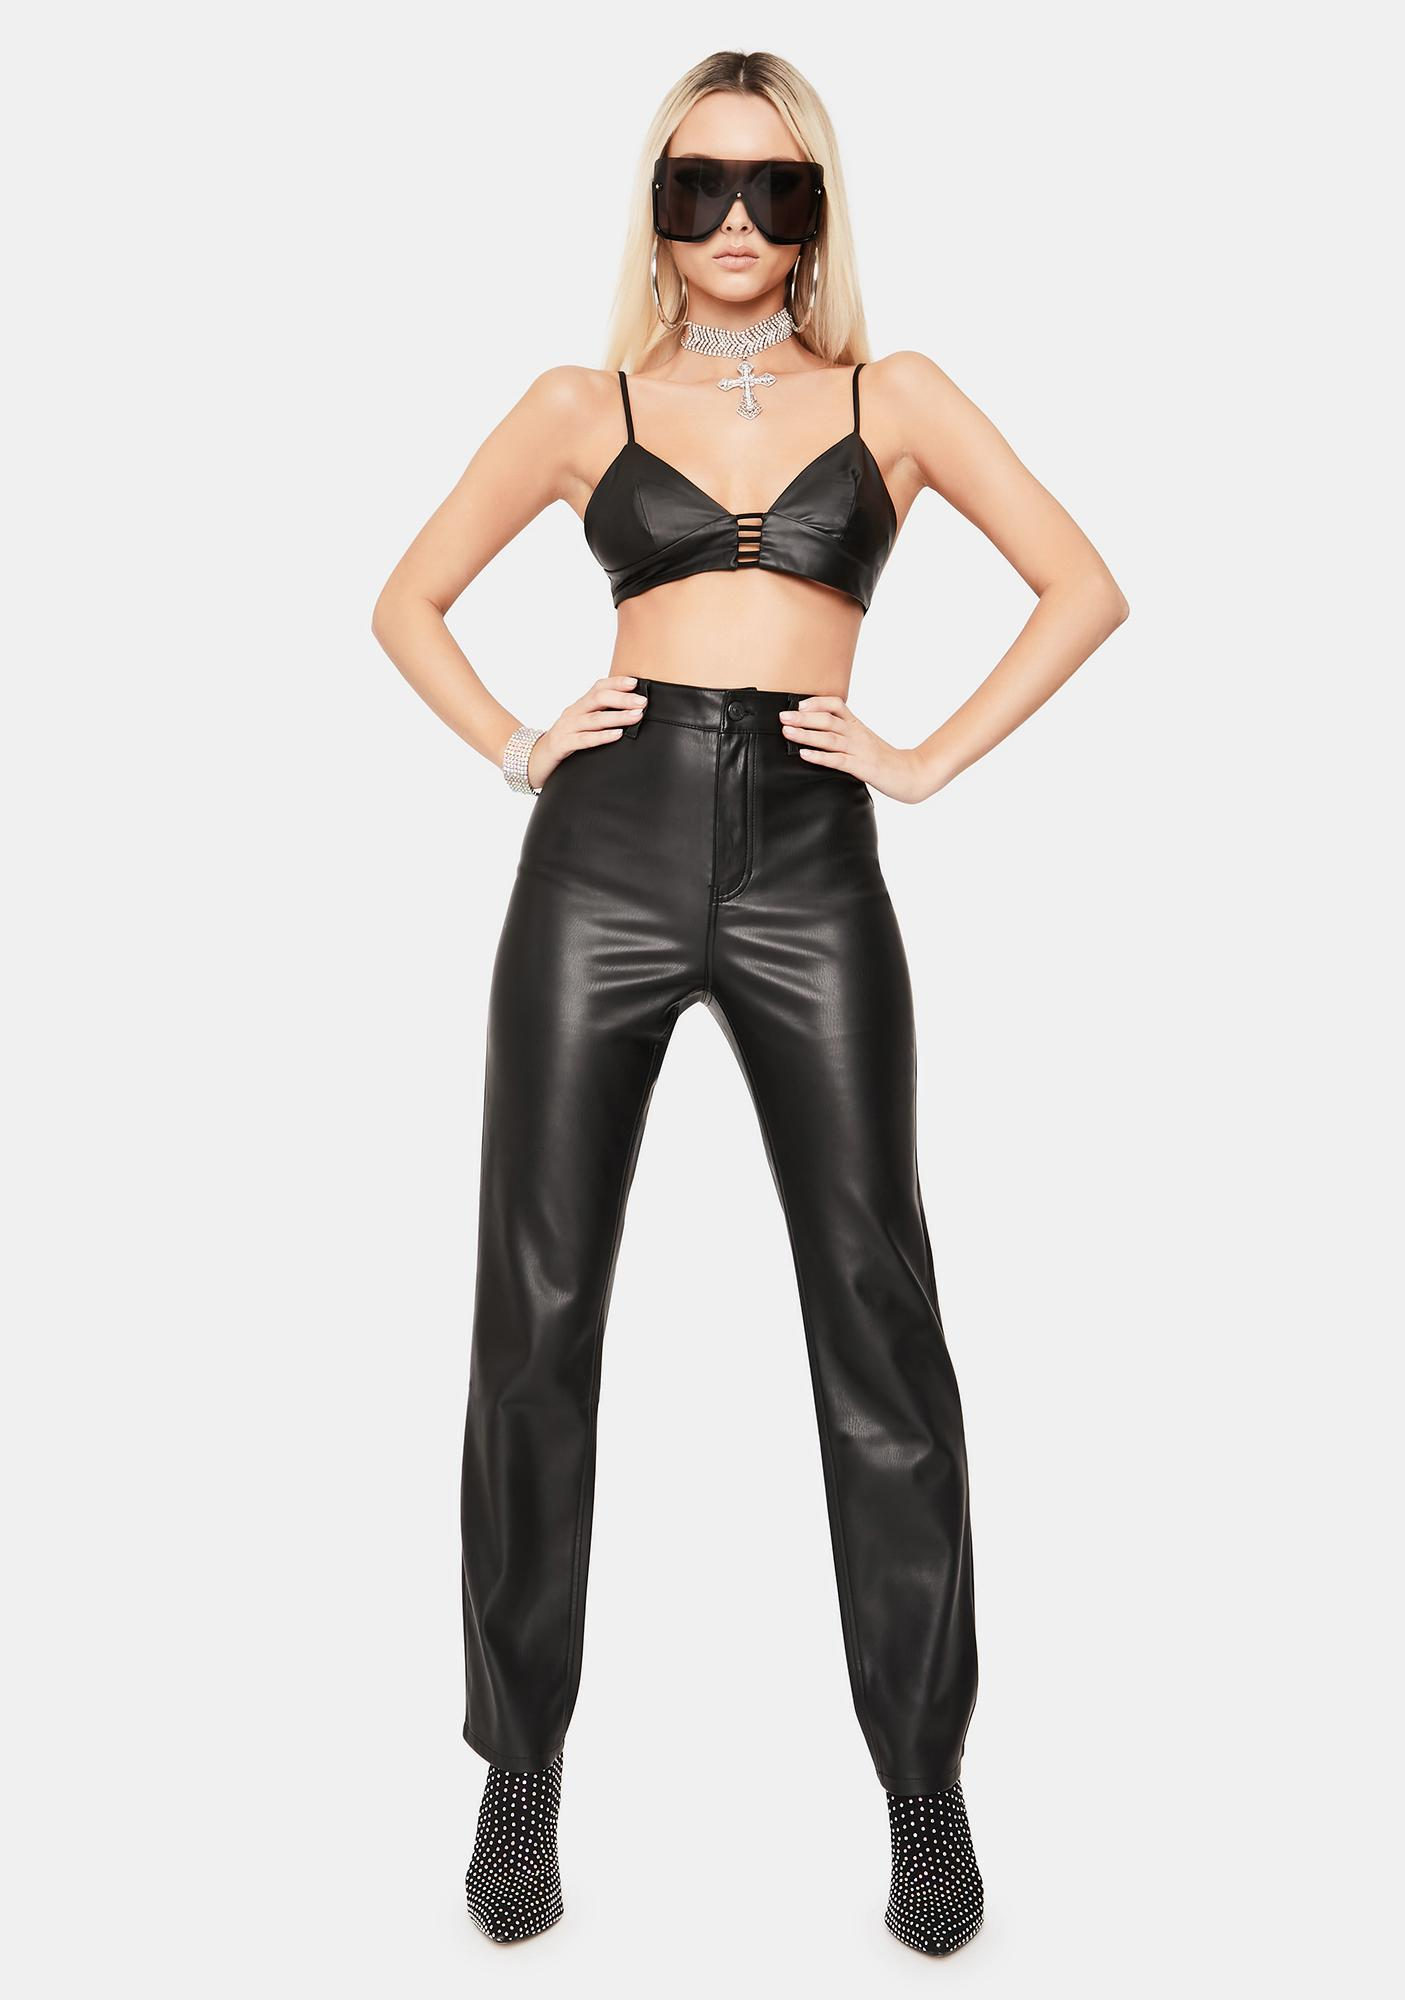 Hardcore Cutie Vegan Leather Bra Top